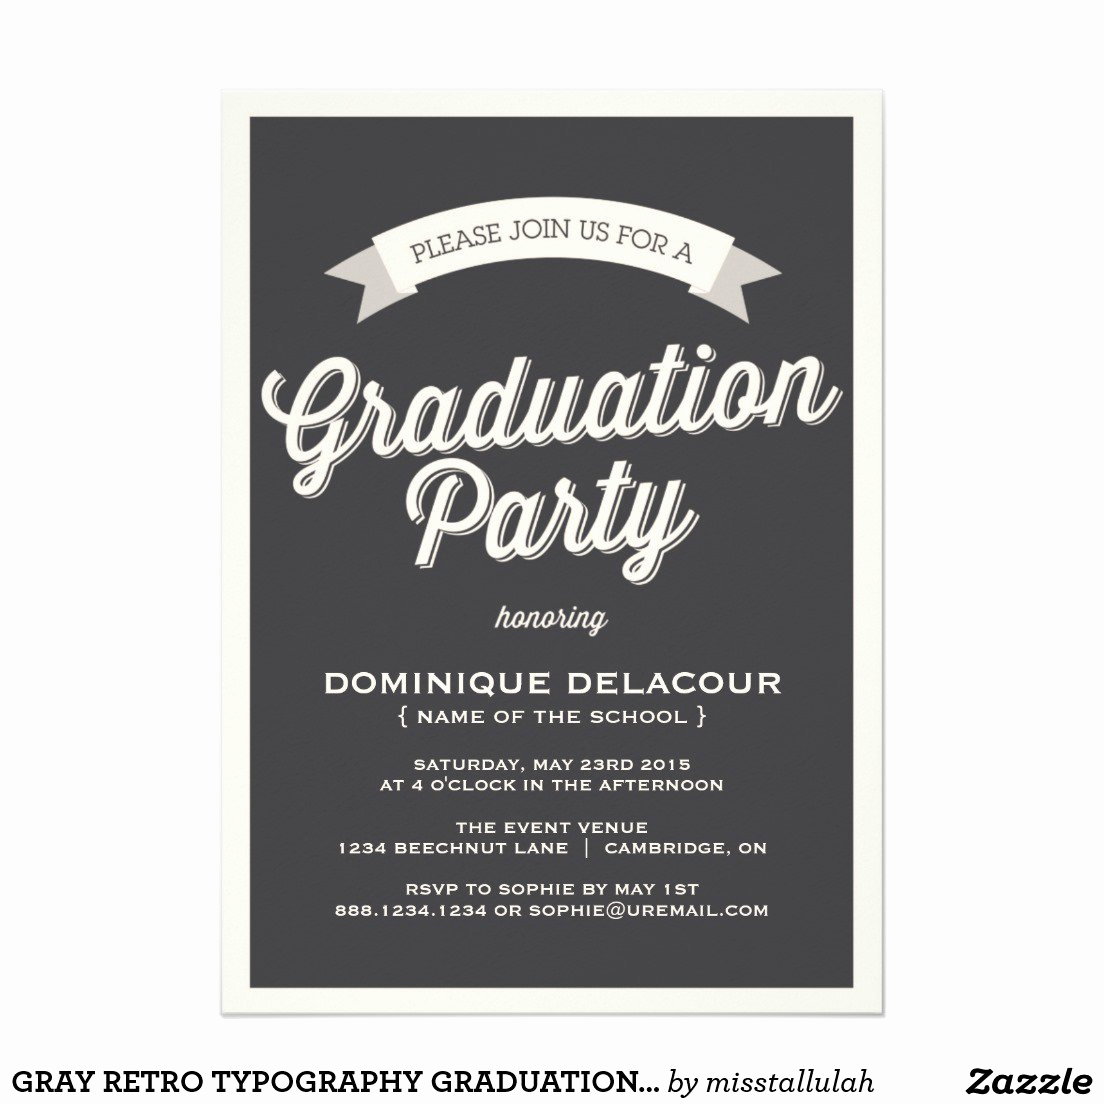 Graduation Celebration Invitation Wording Luxury Graduation Dinner Invitation Wording